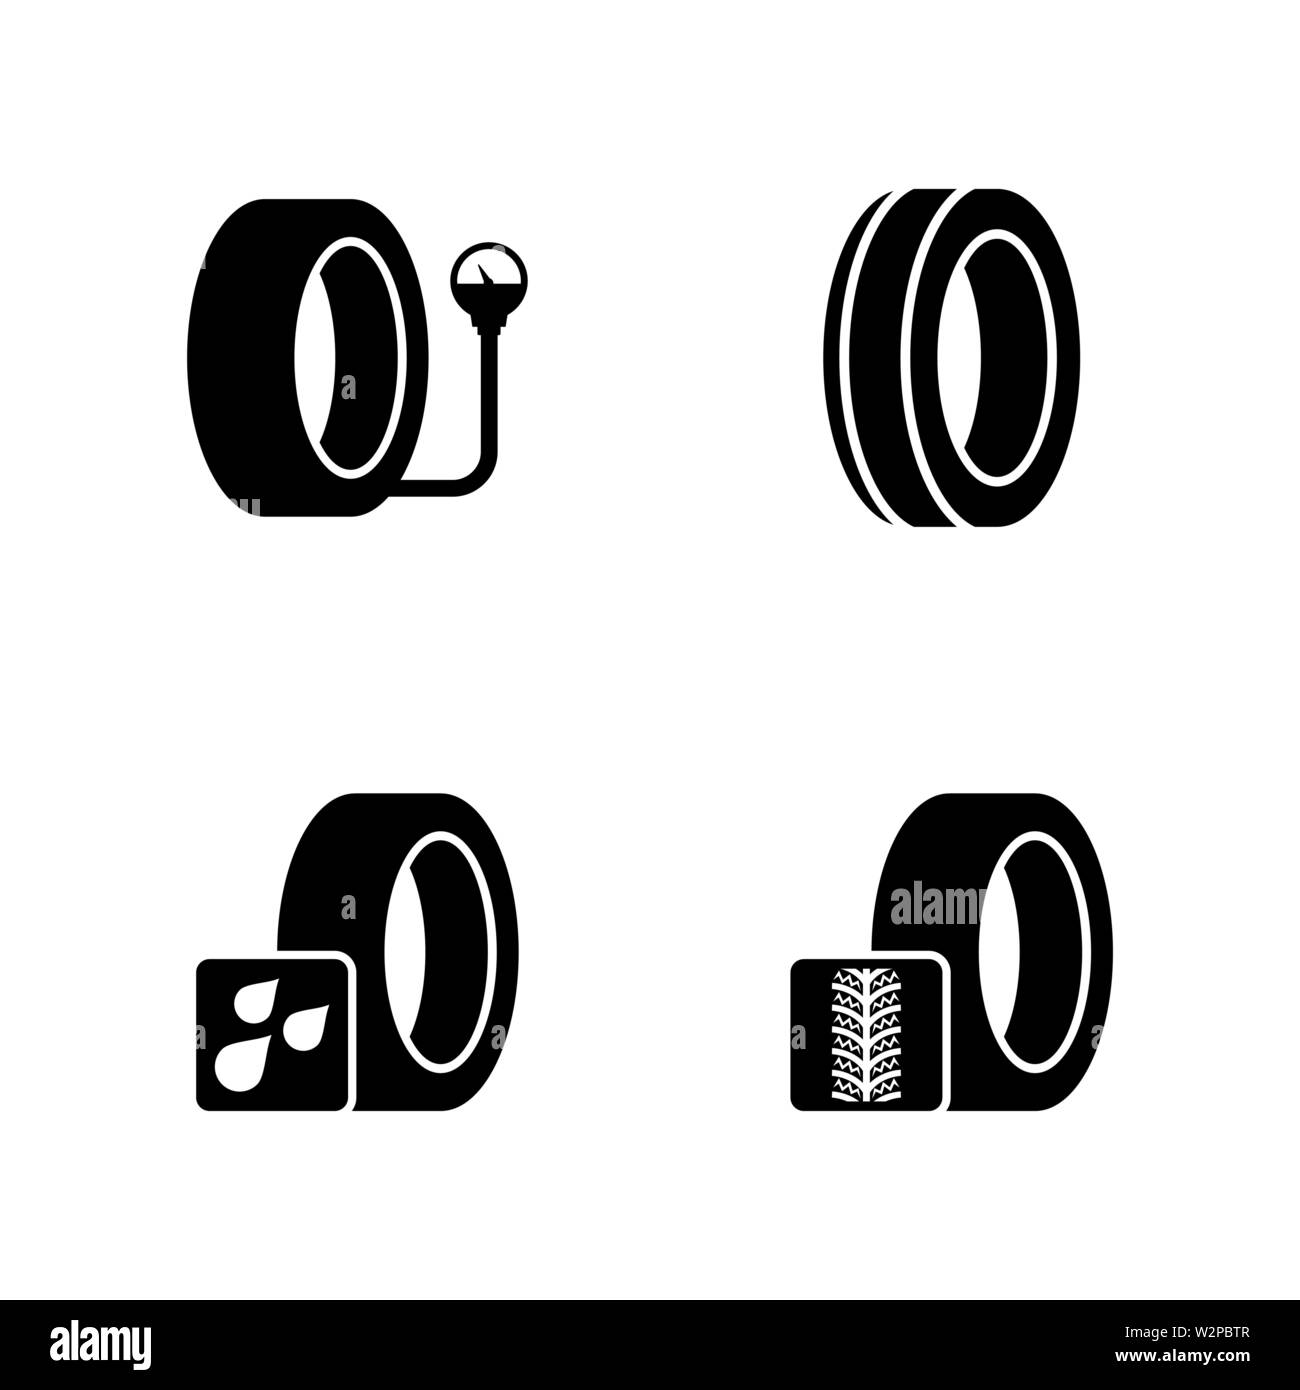 Auto Service Shop Wheels and Tires. Simple Related Vector Icons Set for Video, Mobile Apps, Web Sites, Print Projects and Your Design. Black Flat Illu Stock Vector